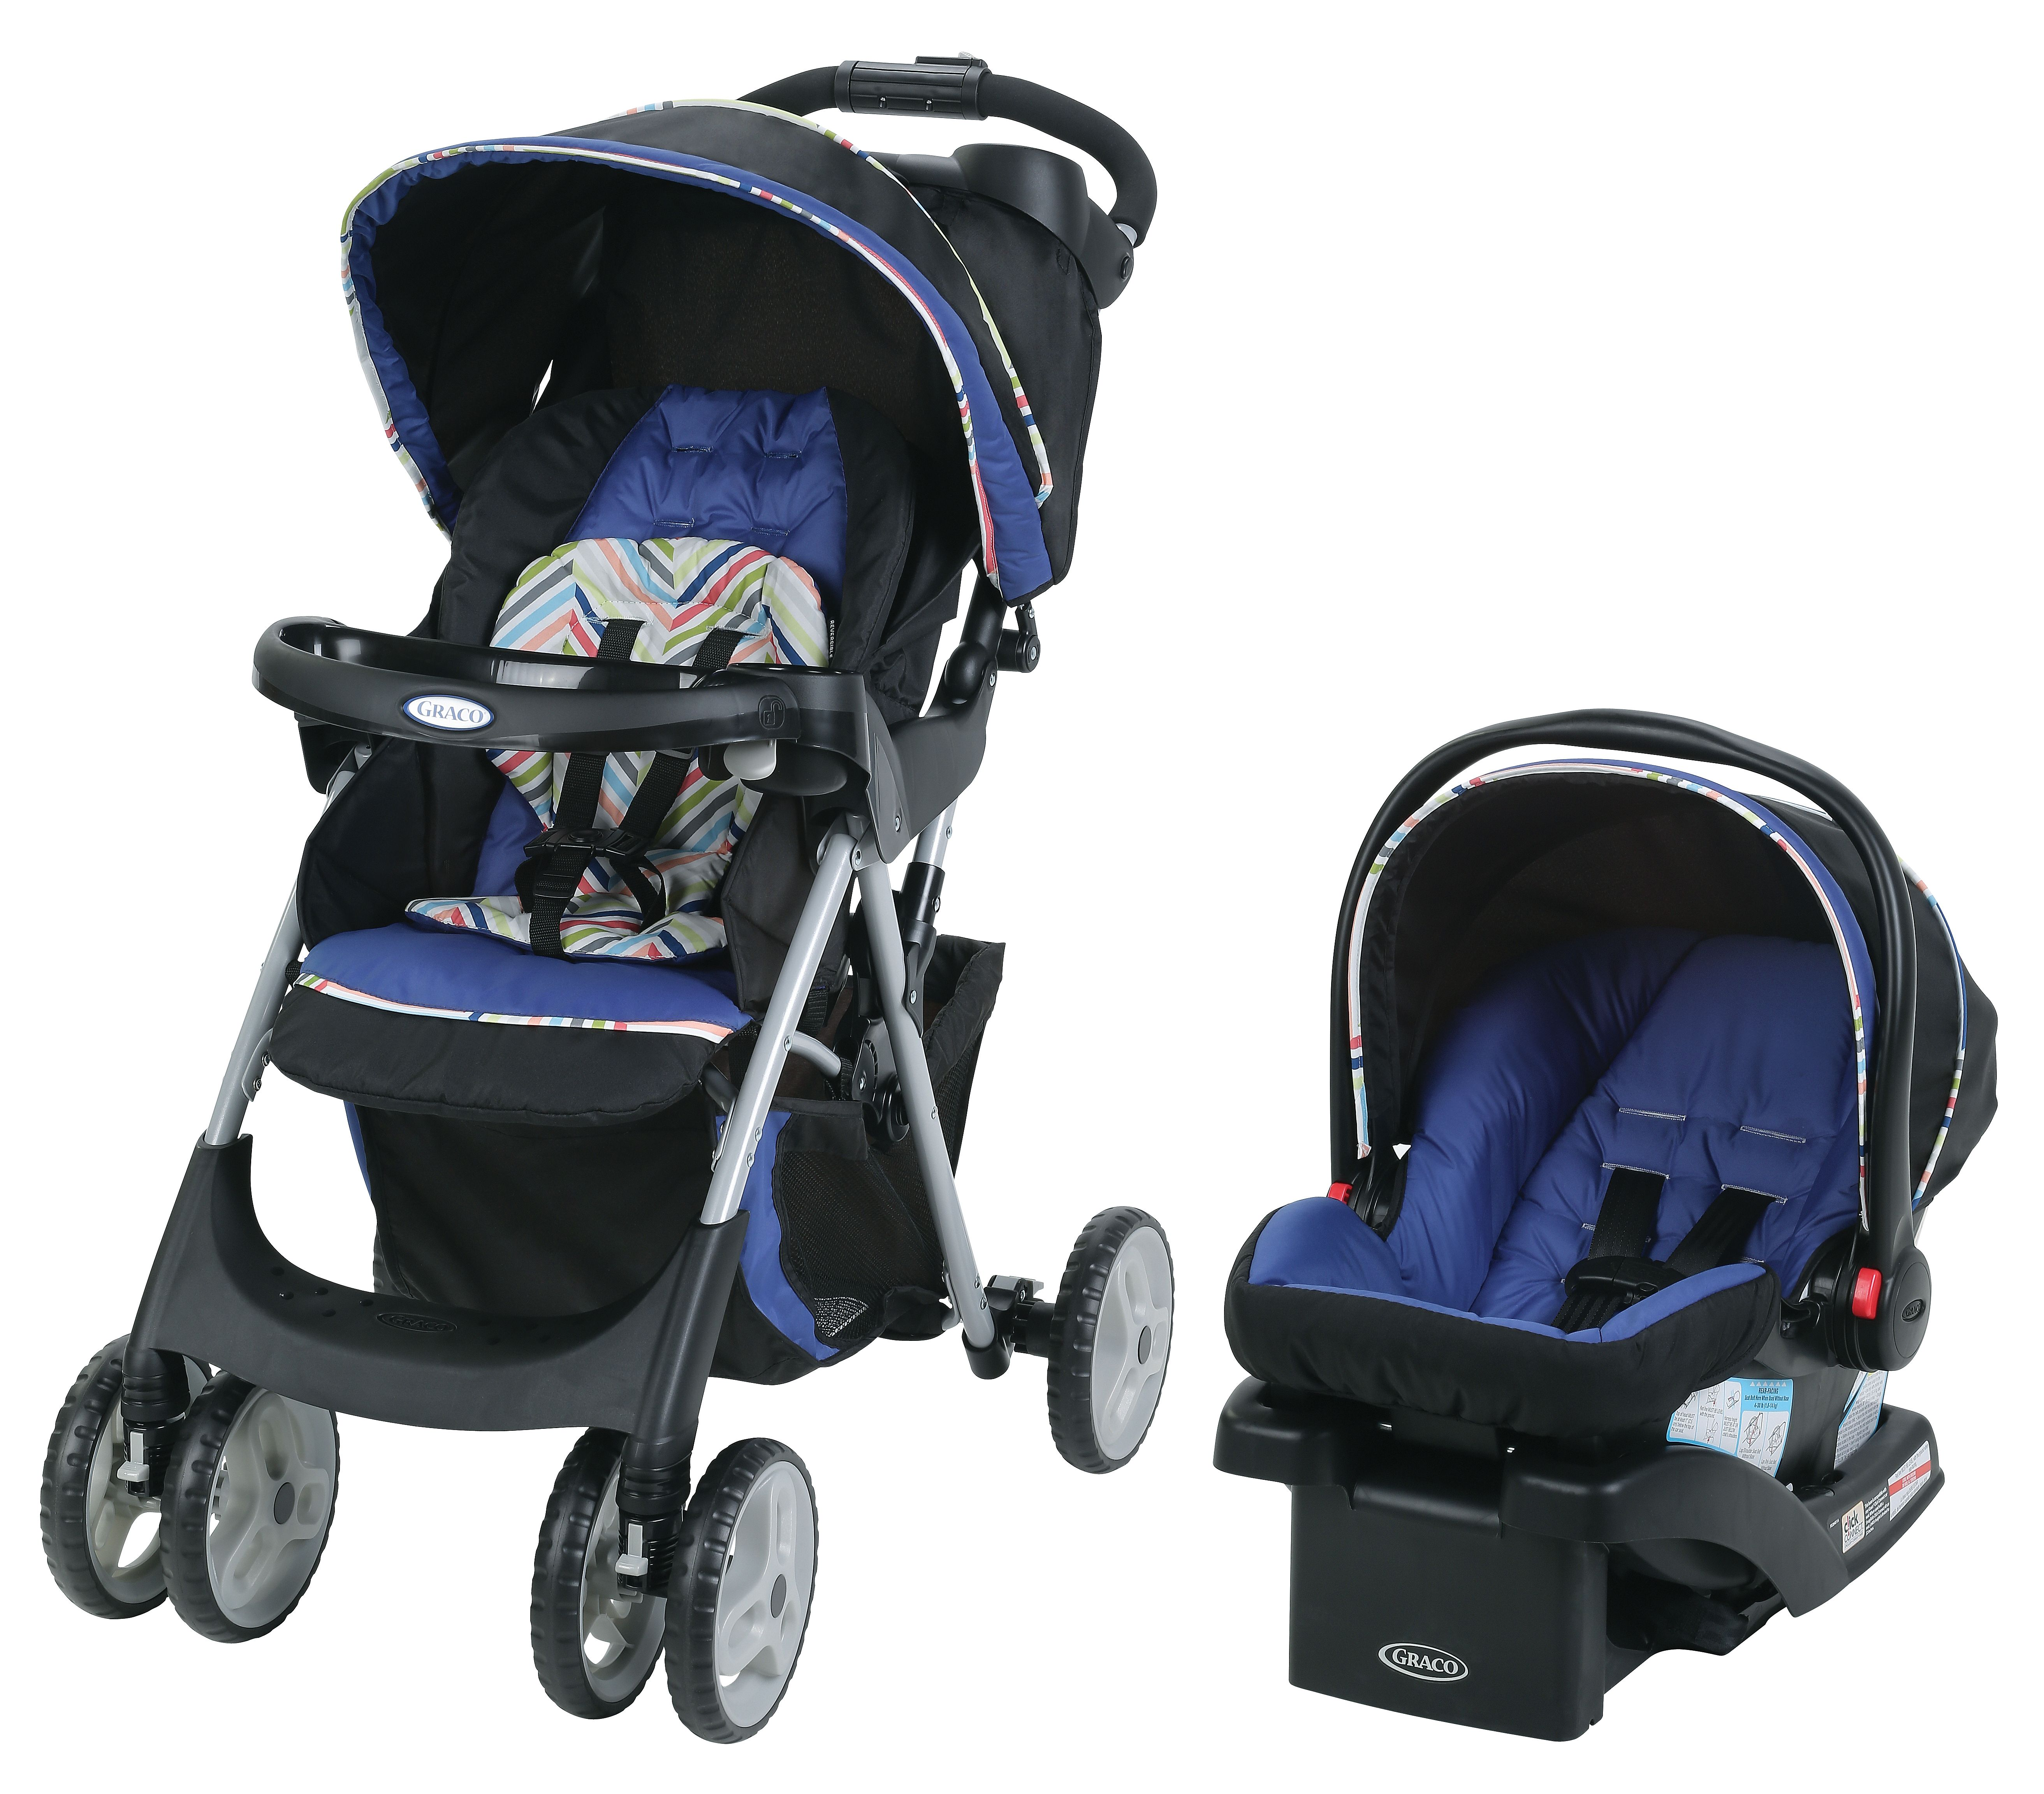 Cruiser click connect stroller travel system